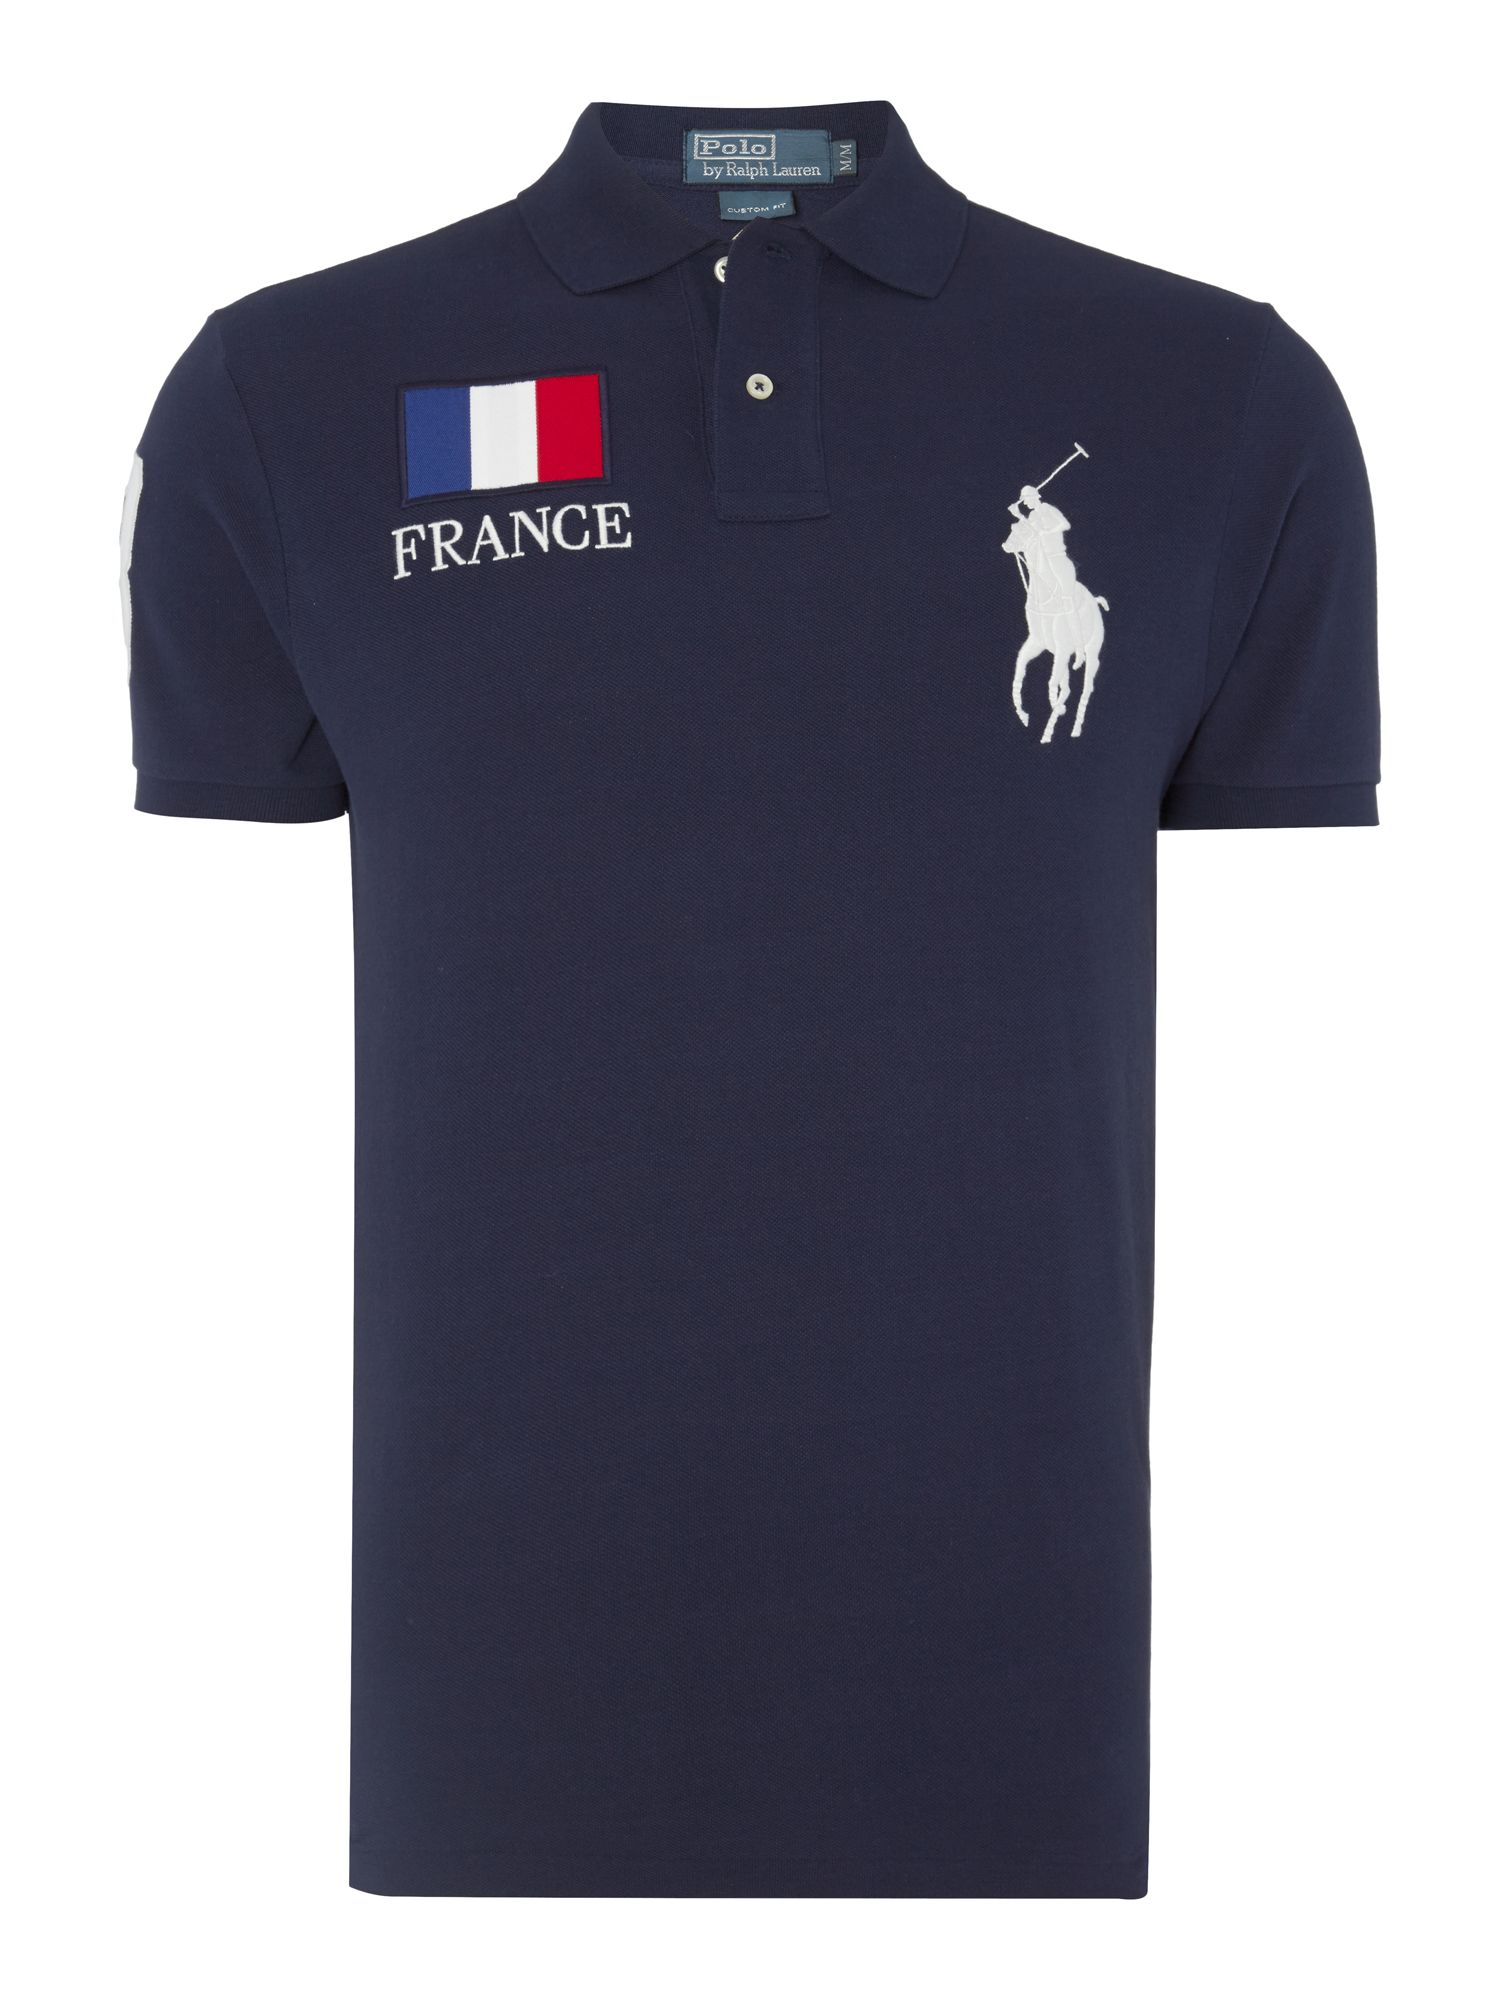 polo ralph lauren ralph lauren brazil themed polo shirt france in blue for men lyst. Black Bedroom Furniture Sets. Home Design Ideas